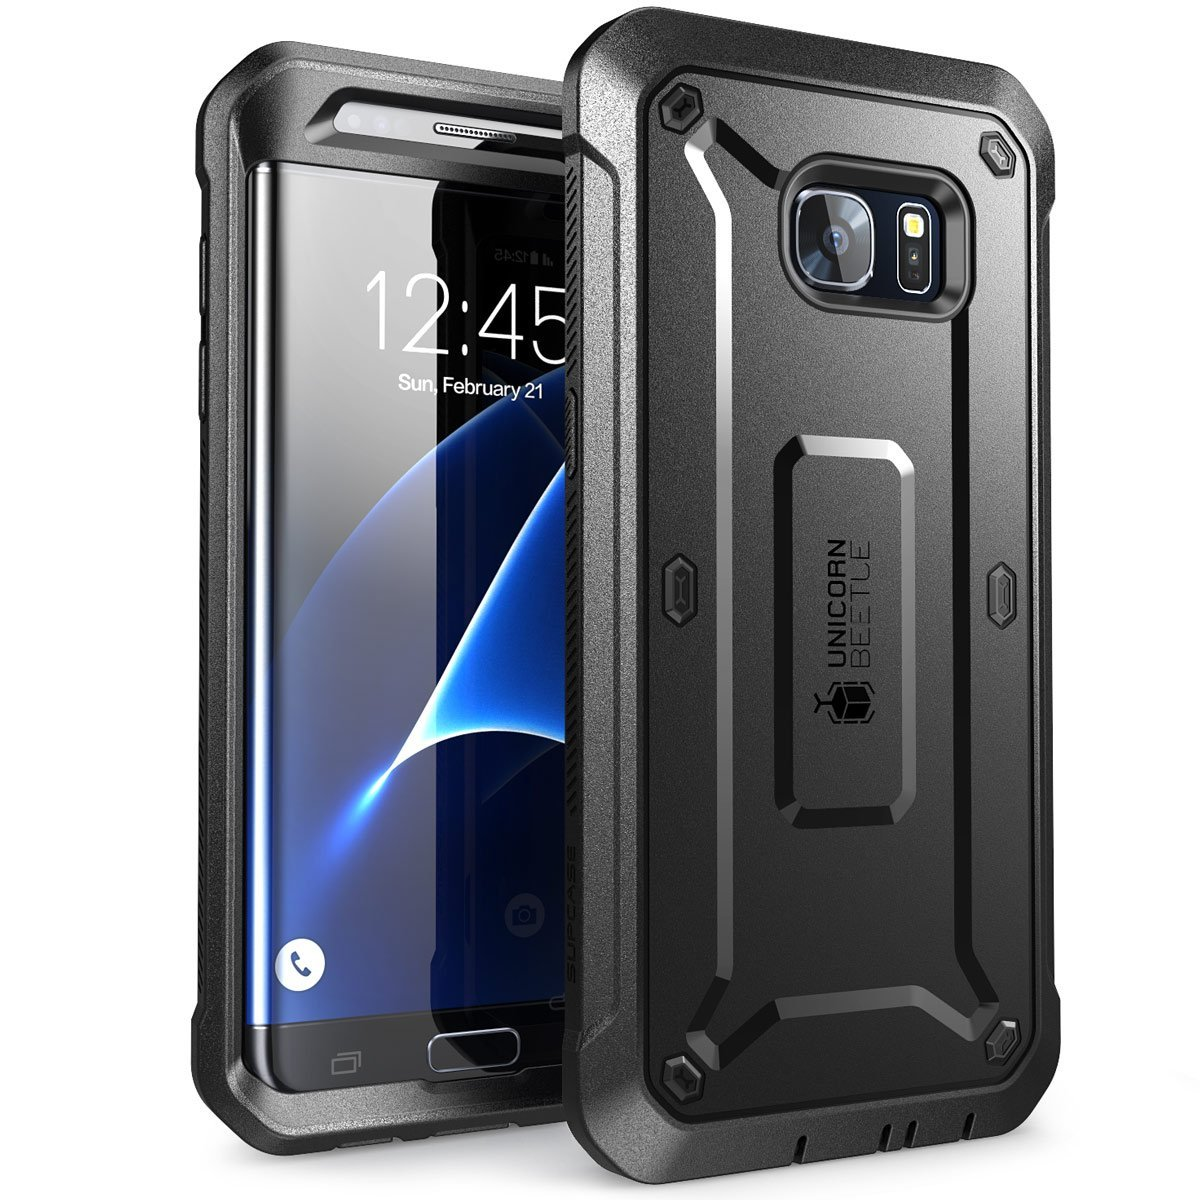 best samsung galaxy s7 edge cases phandroid. Black Bedroom Furniture Sets. Home Design Ideas